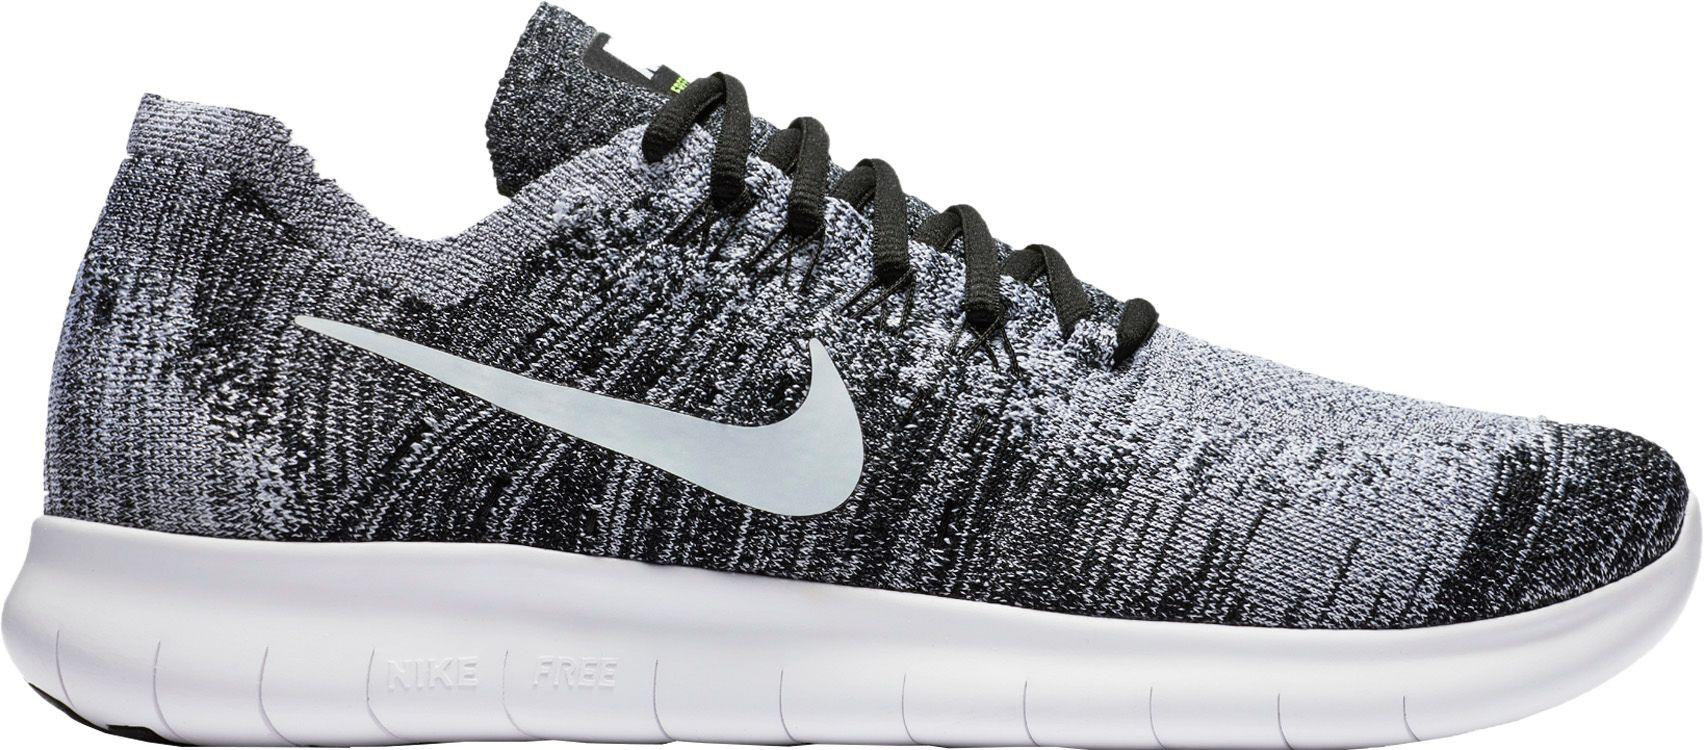 94343ee32d98d Lyst - Nike Free Rn Flyknit 2017 Running Shoes in Gray for Men